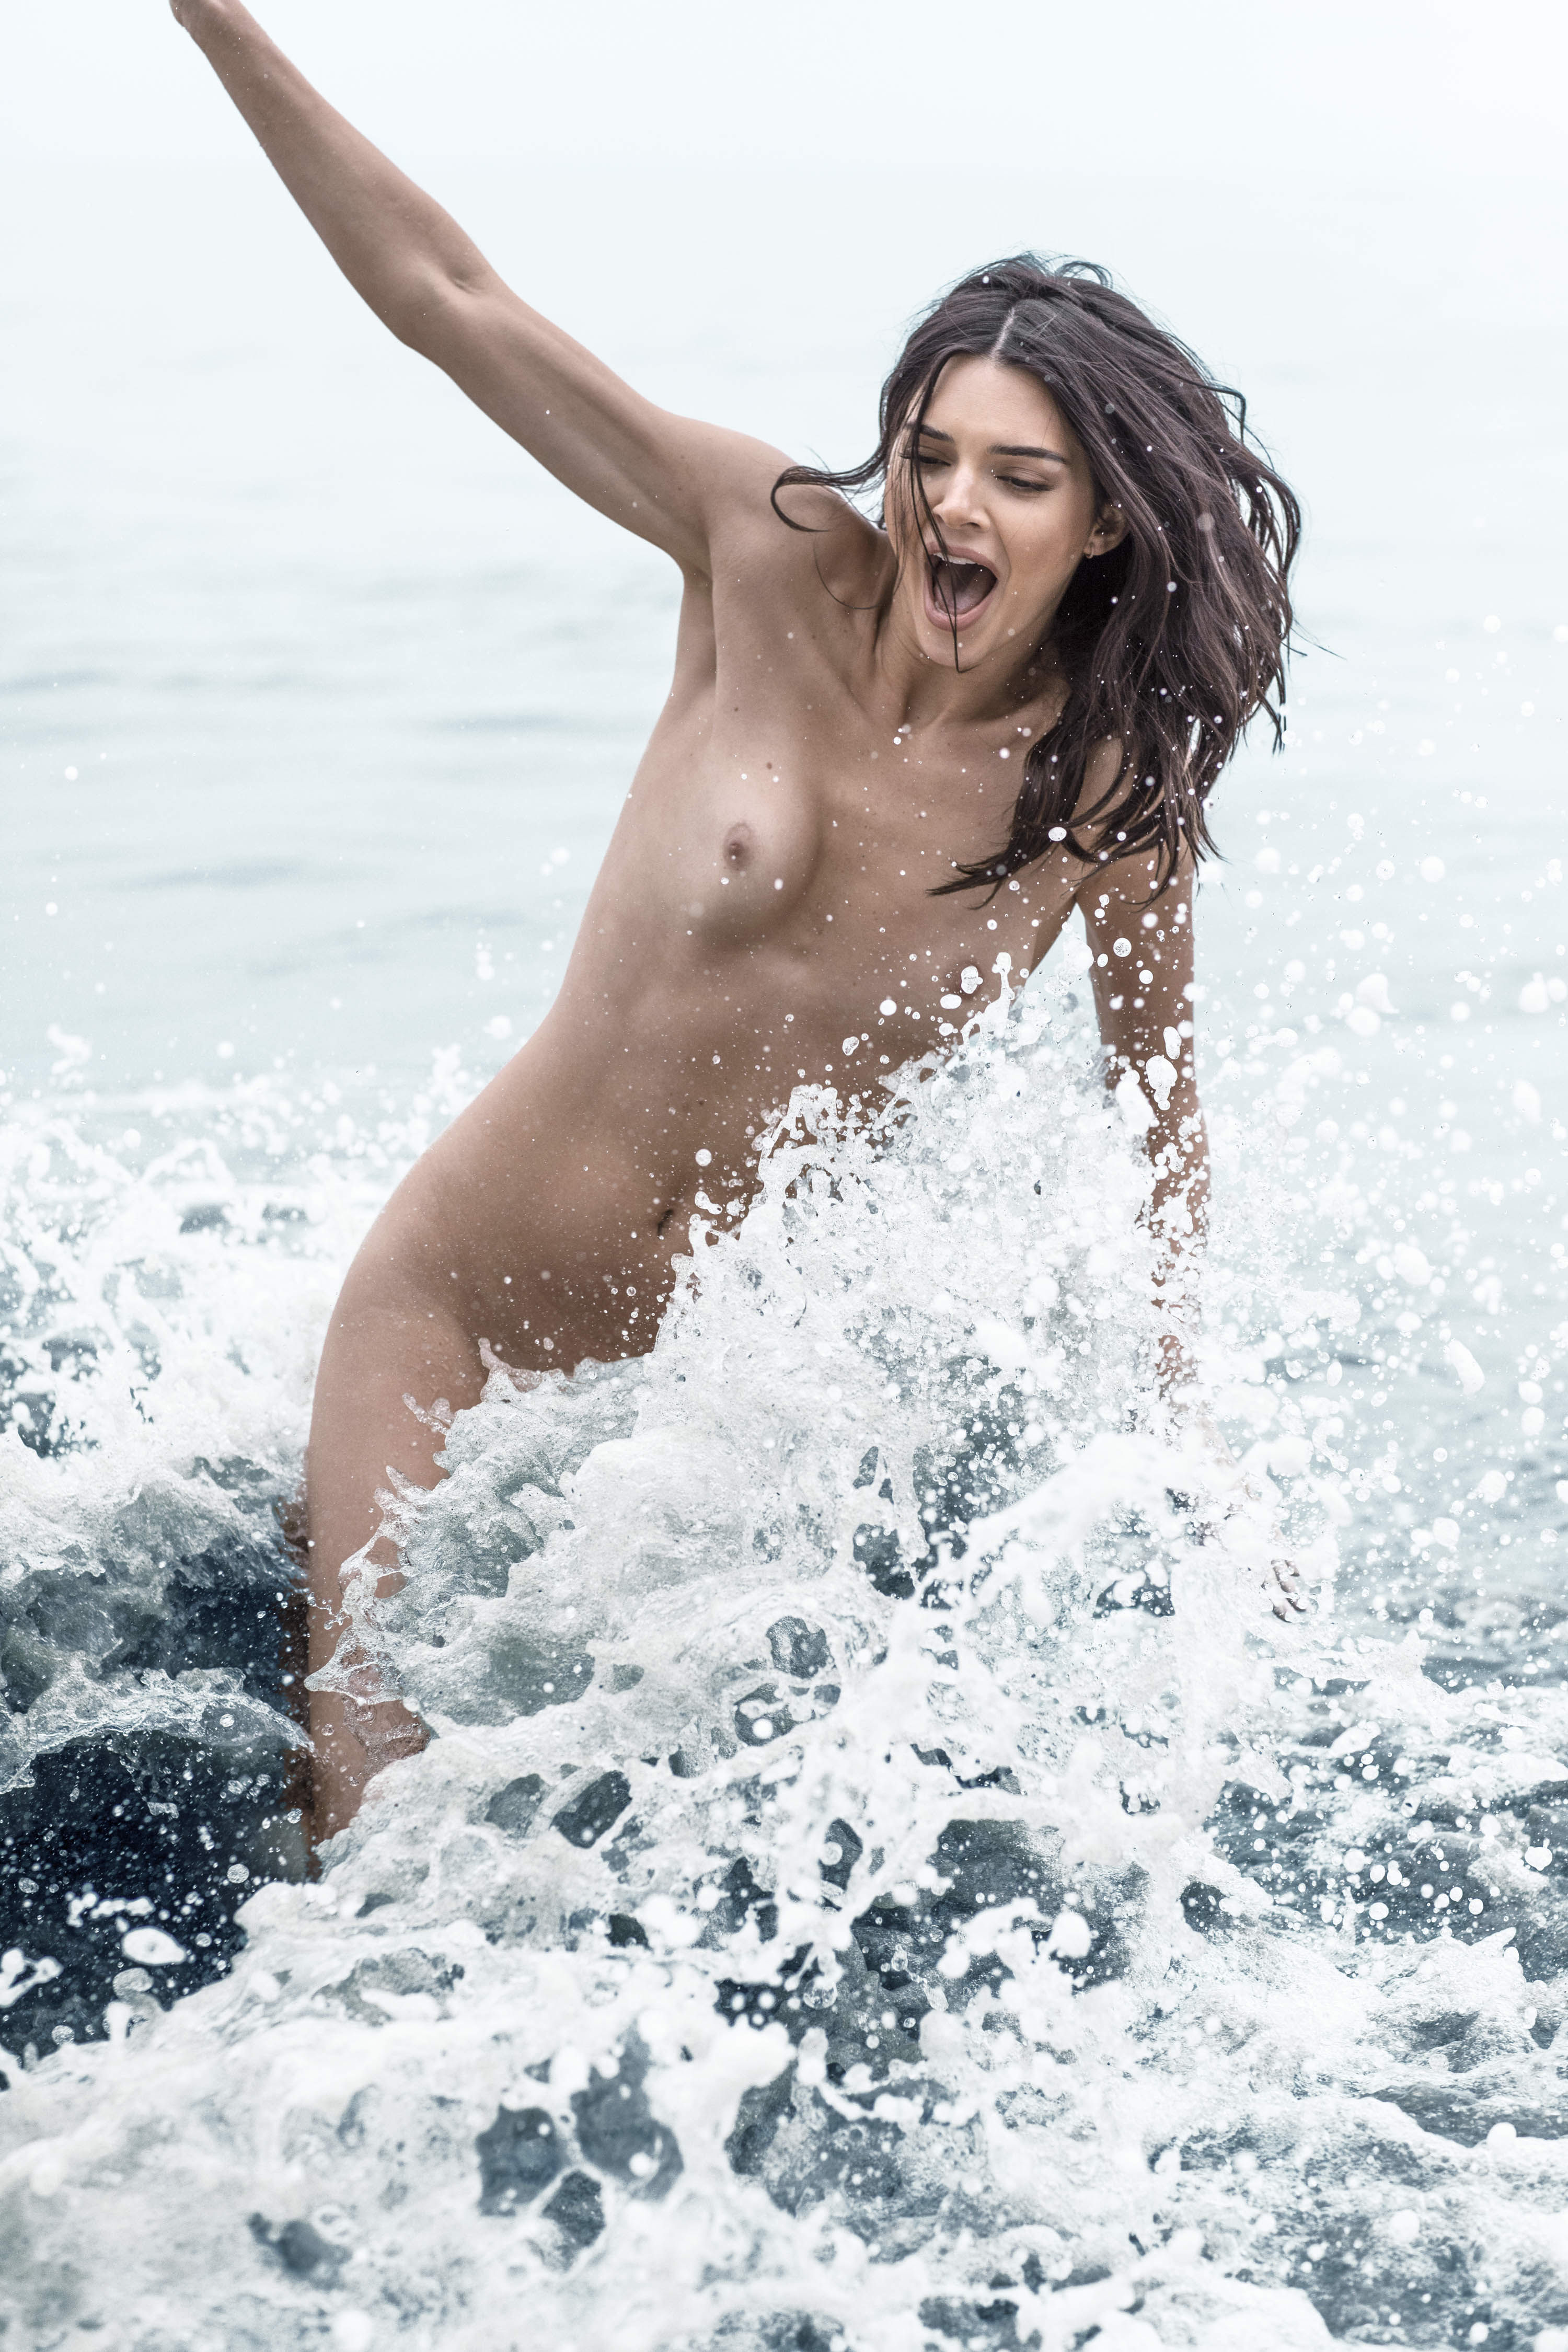 0810235419680_08_Kendall-Jenner-Nude-TheFappeningBlog.com-9.jpg